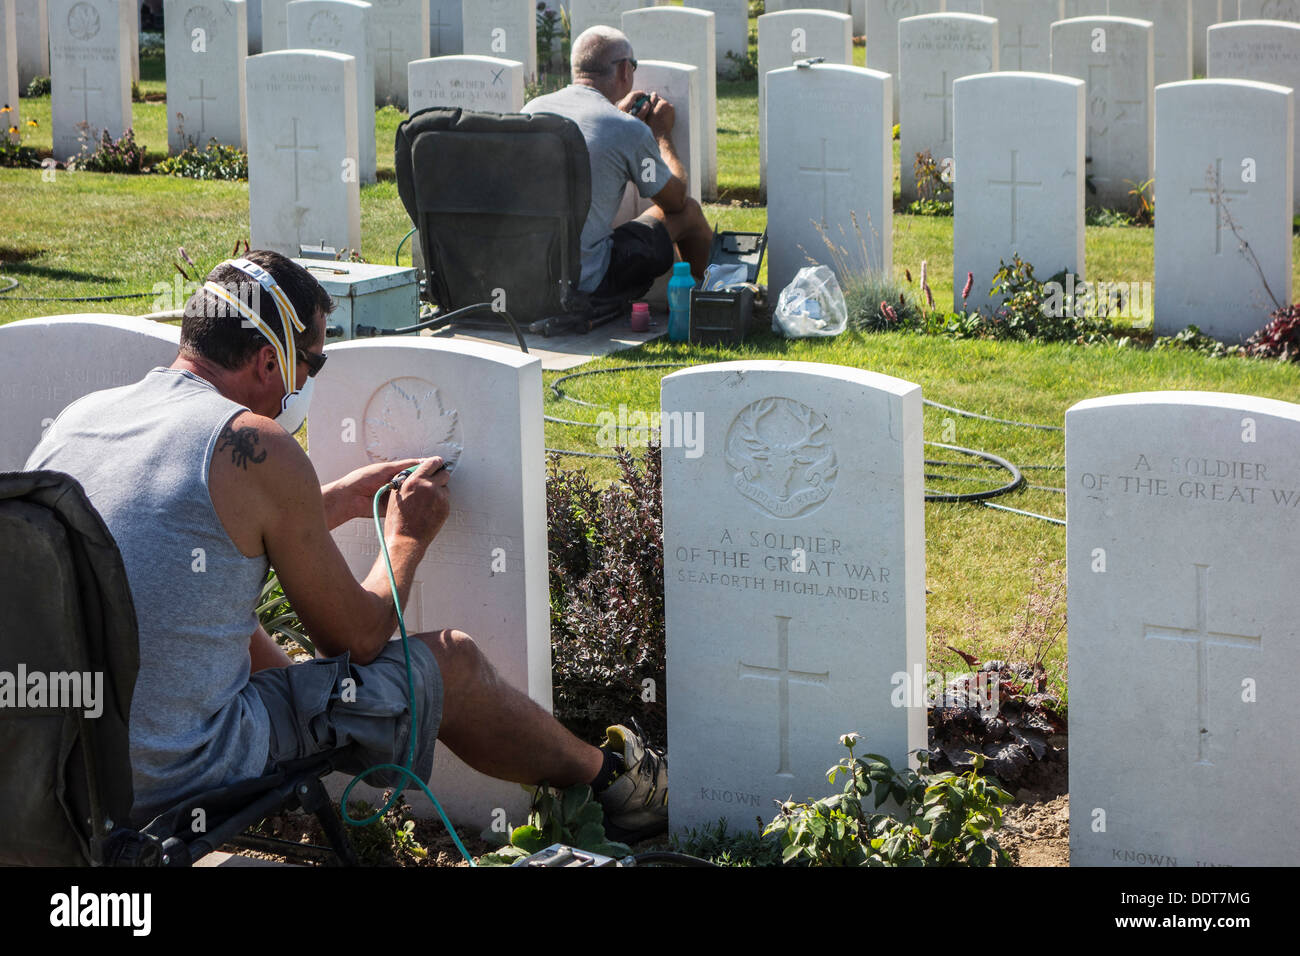 Engravers restoring headstones at Tyne Cot Cemetery of the Commonwealth War Graves Commission for World War One British soldiers - Stock Image